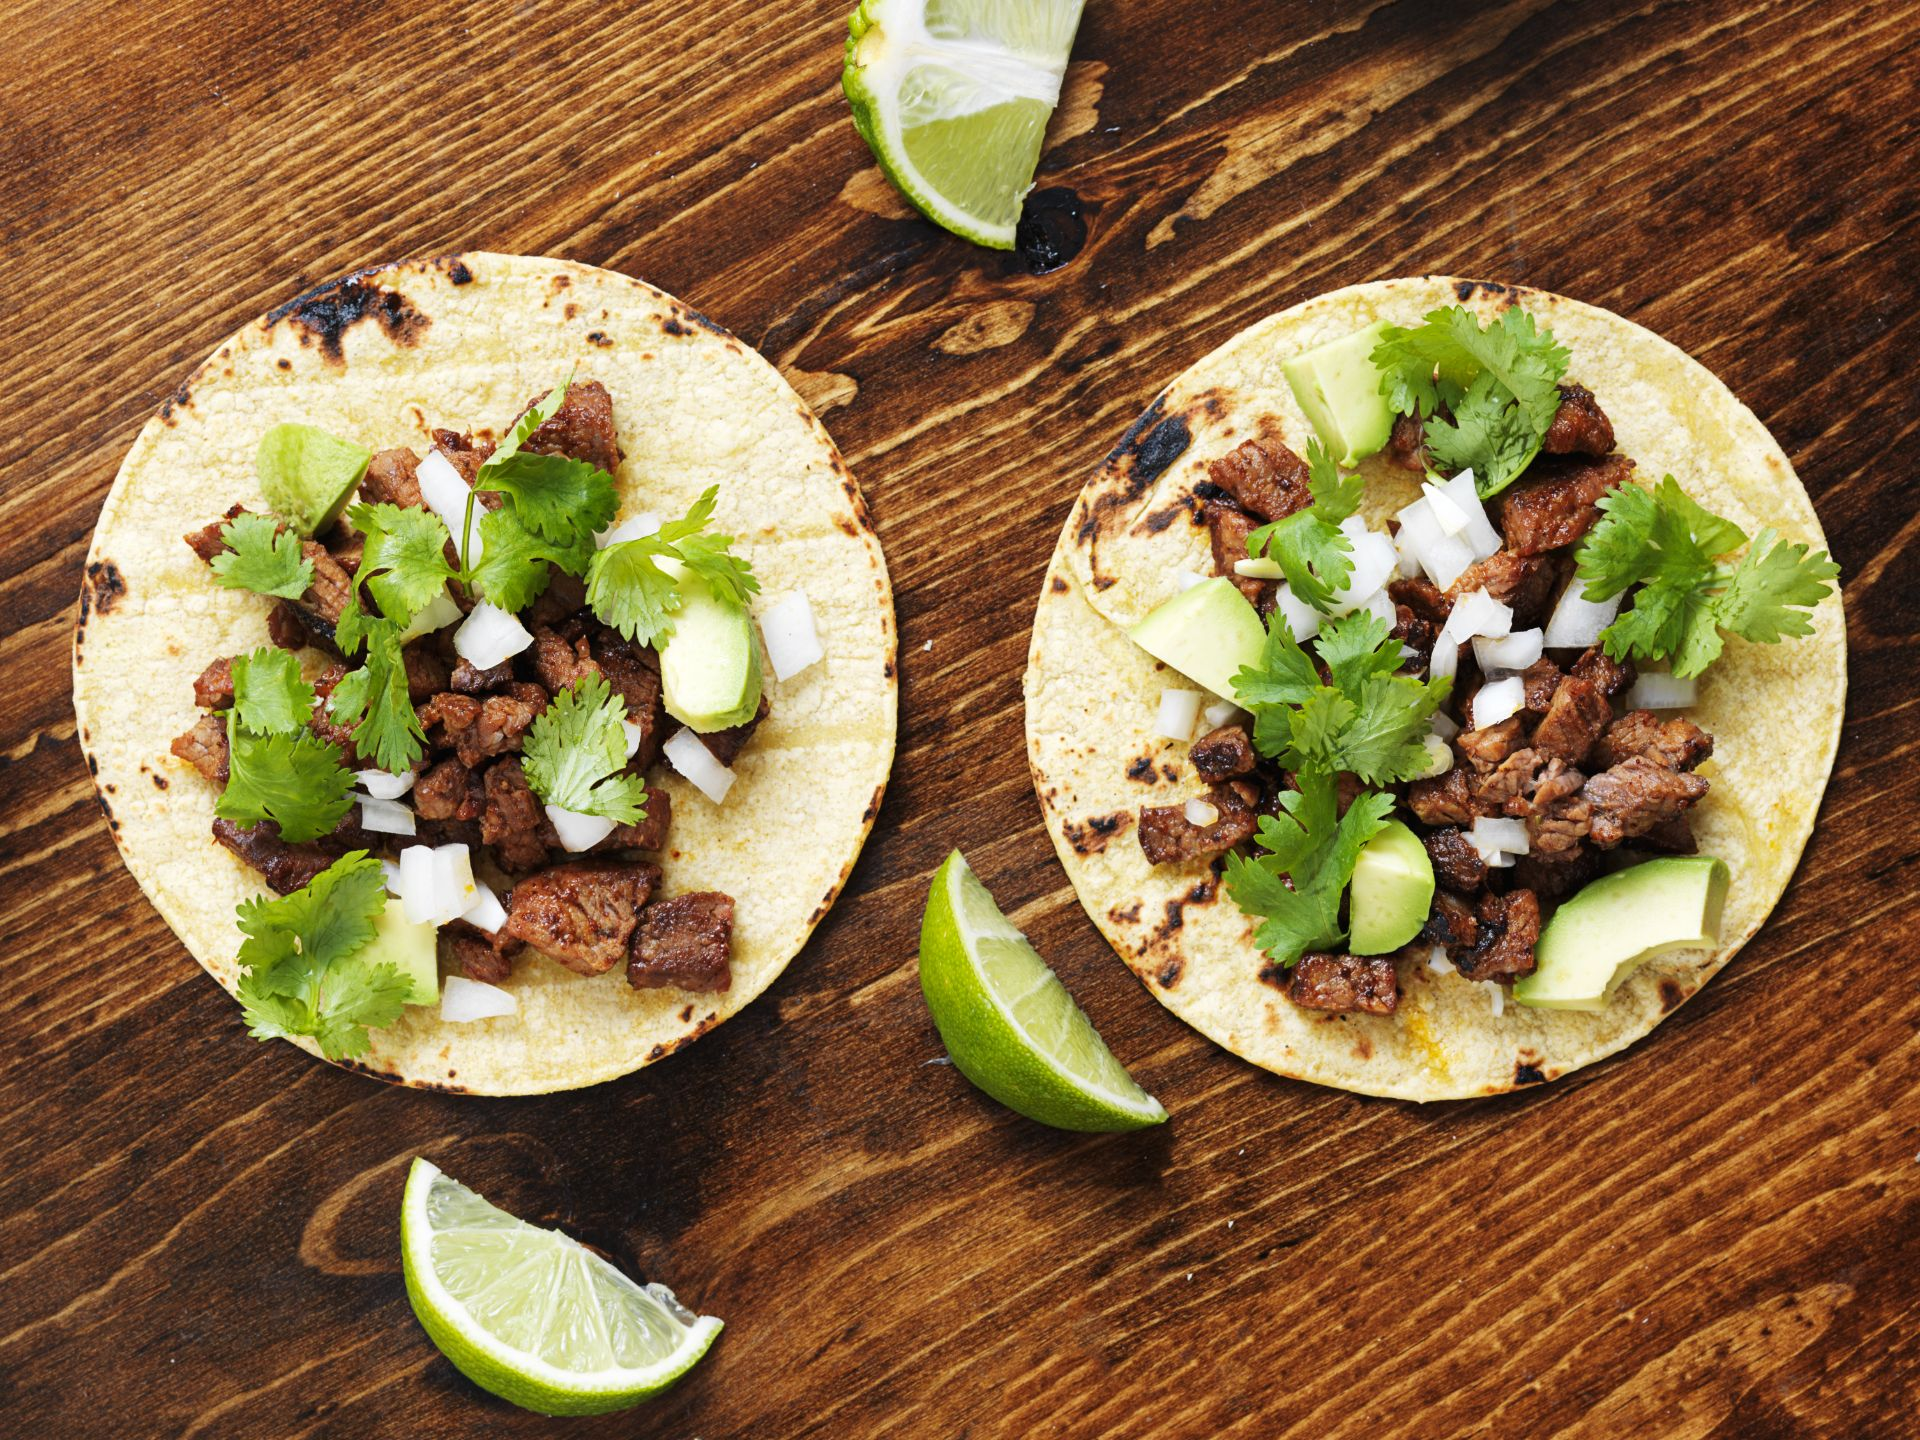 Two authentic street tacos with steak, cilantro, onion and lime